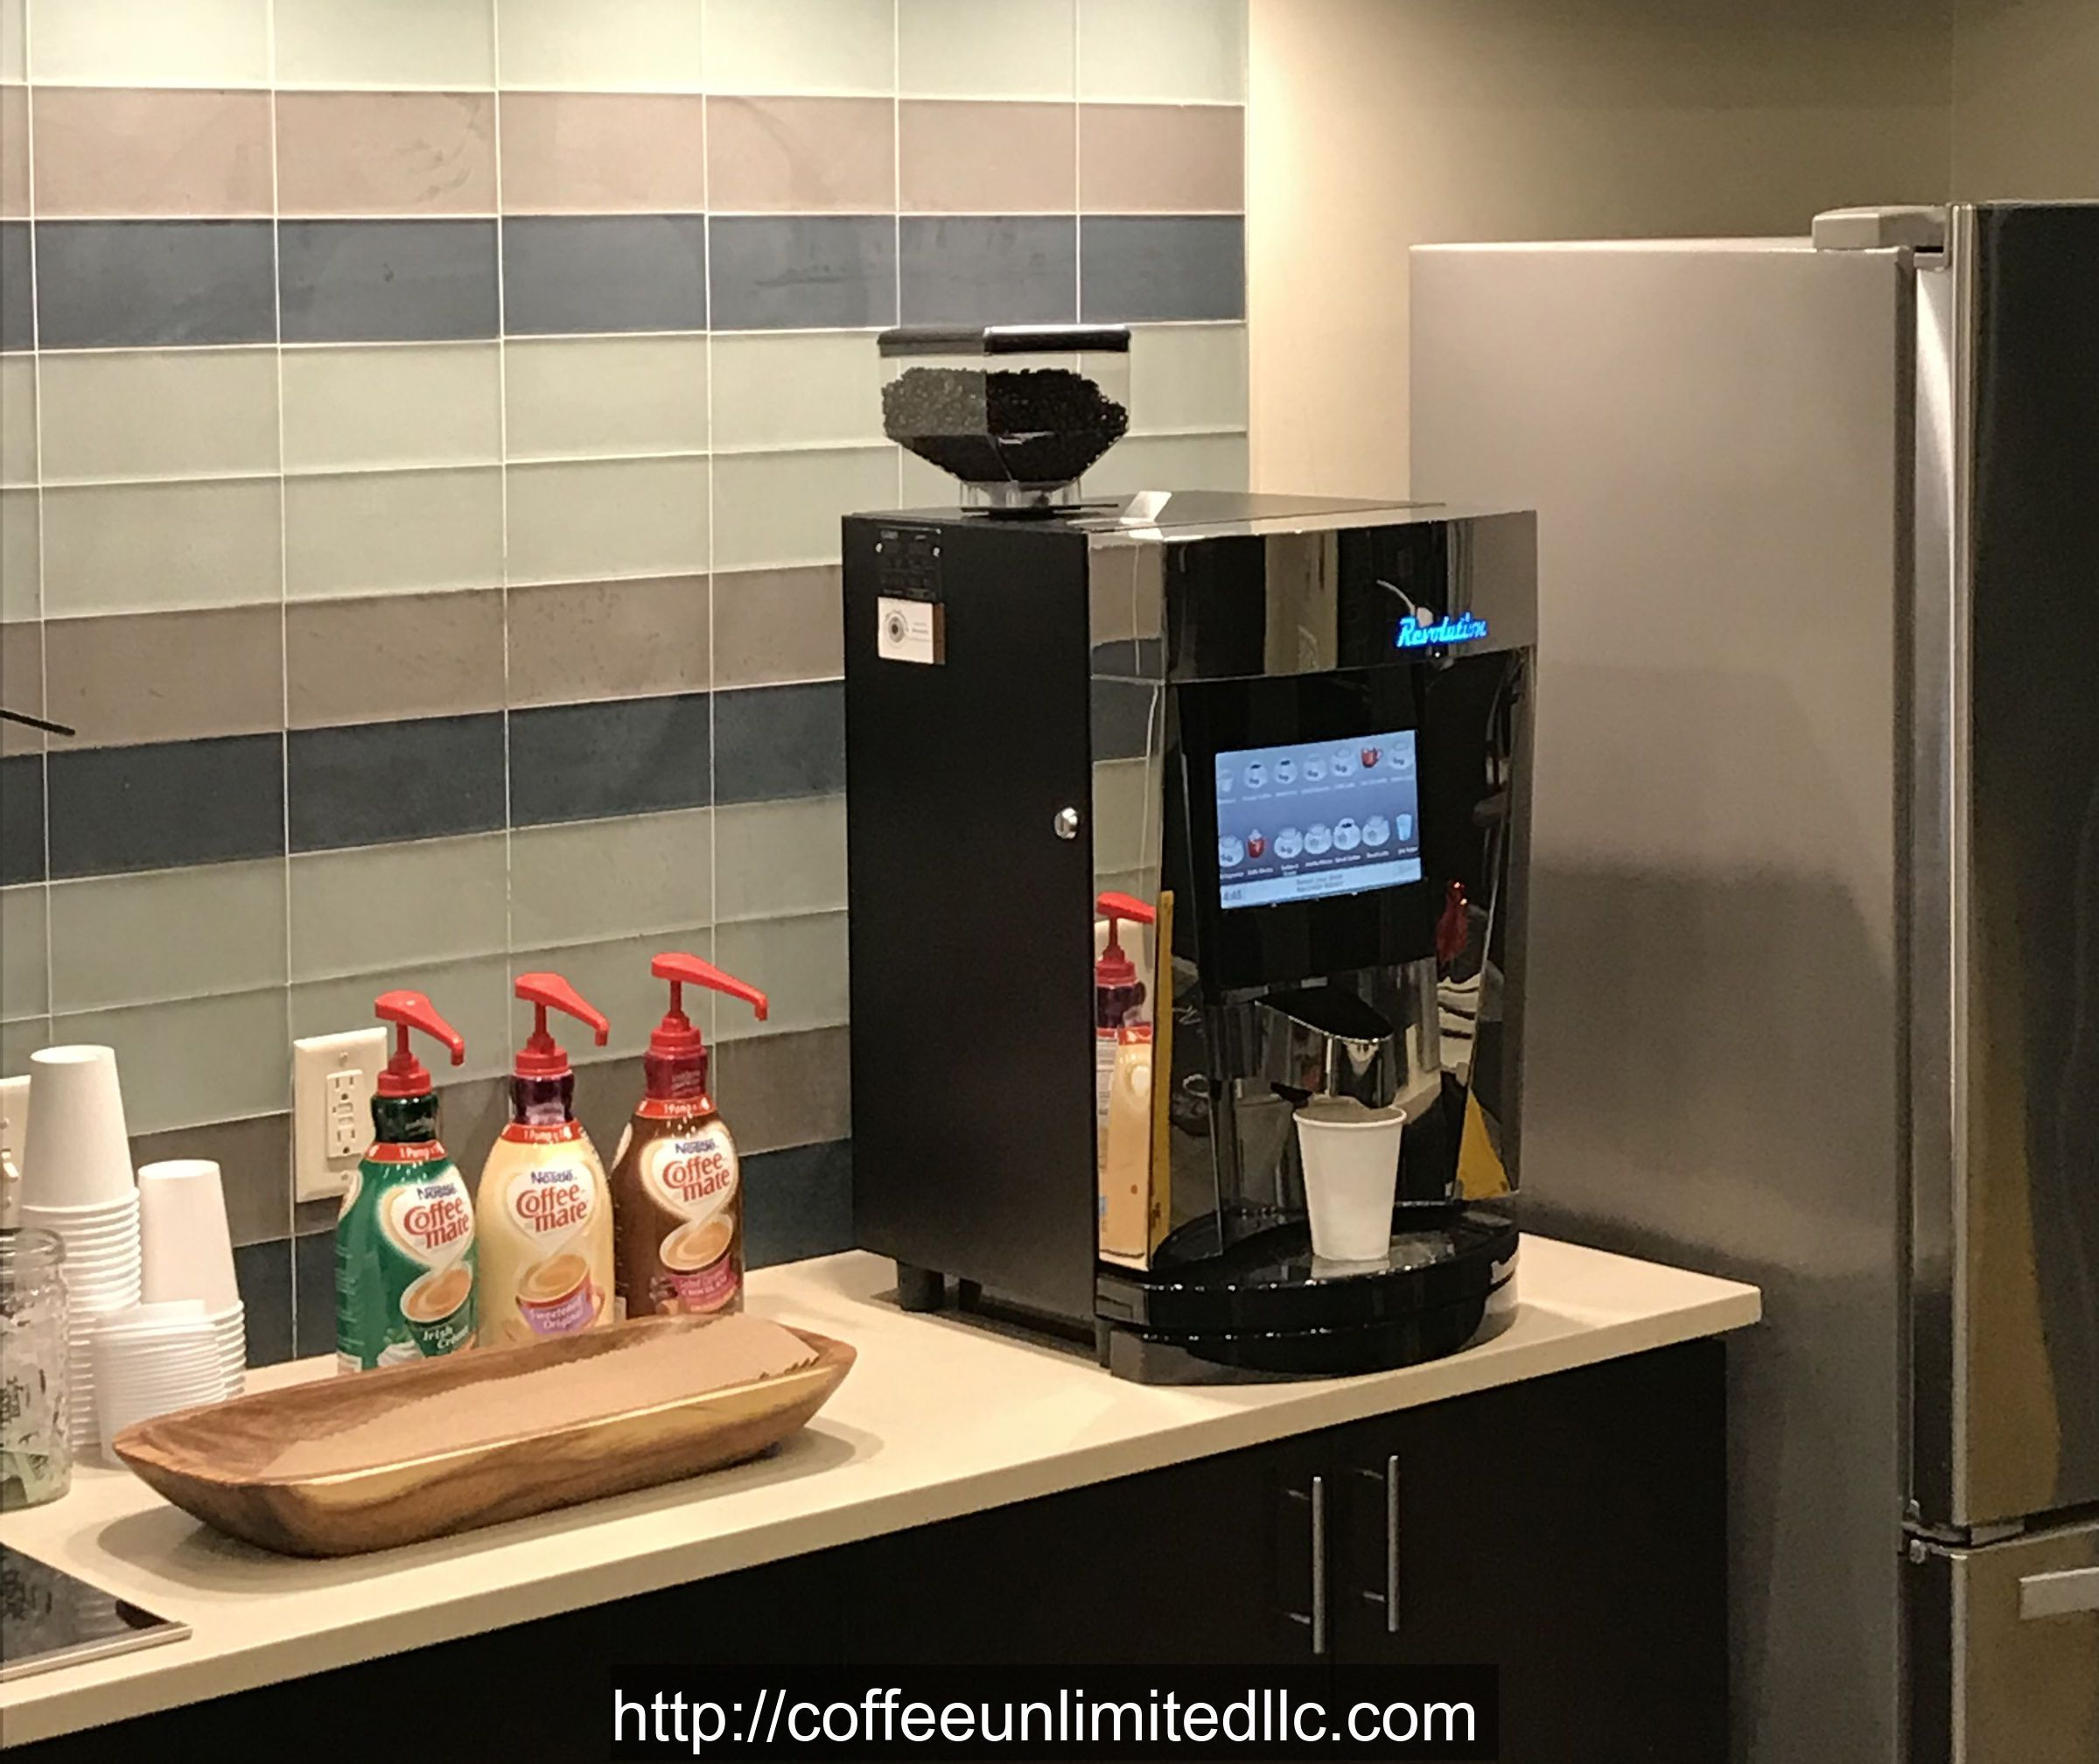 Best Office Coffee Service Water Coffee Delivery Service Coffee Delivery Office Coffee Coffee